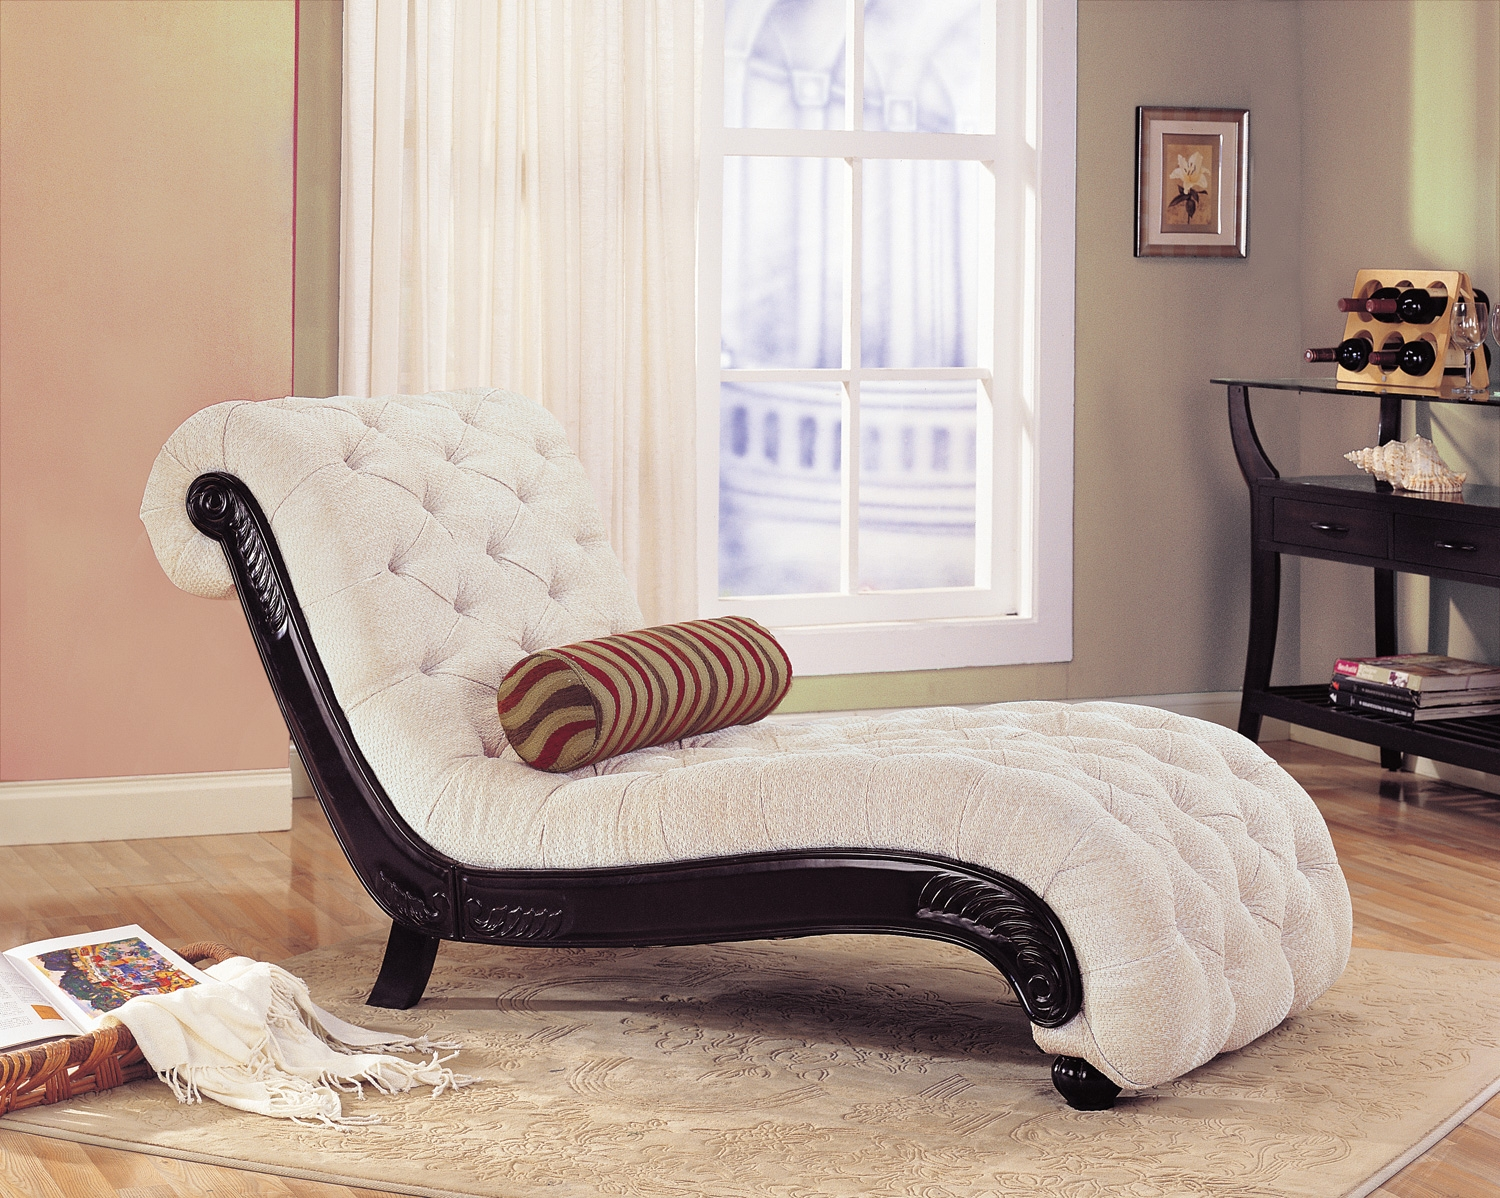 Image of: Top Indoor Chaise Lounge Chair